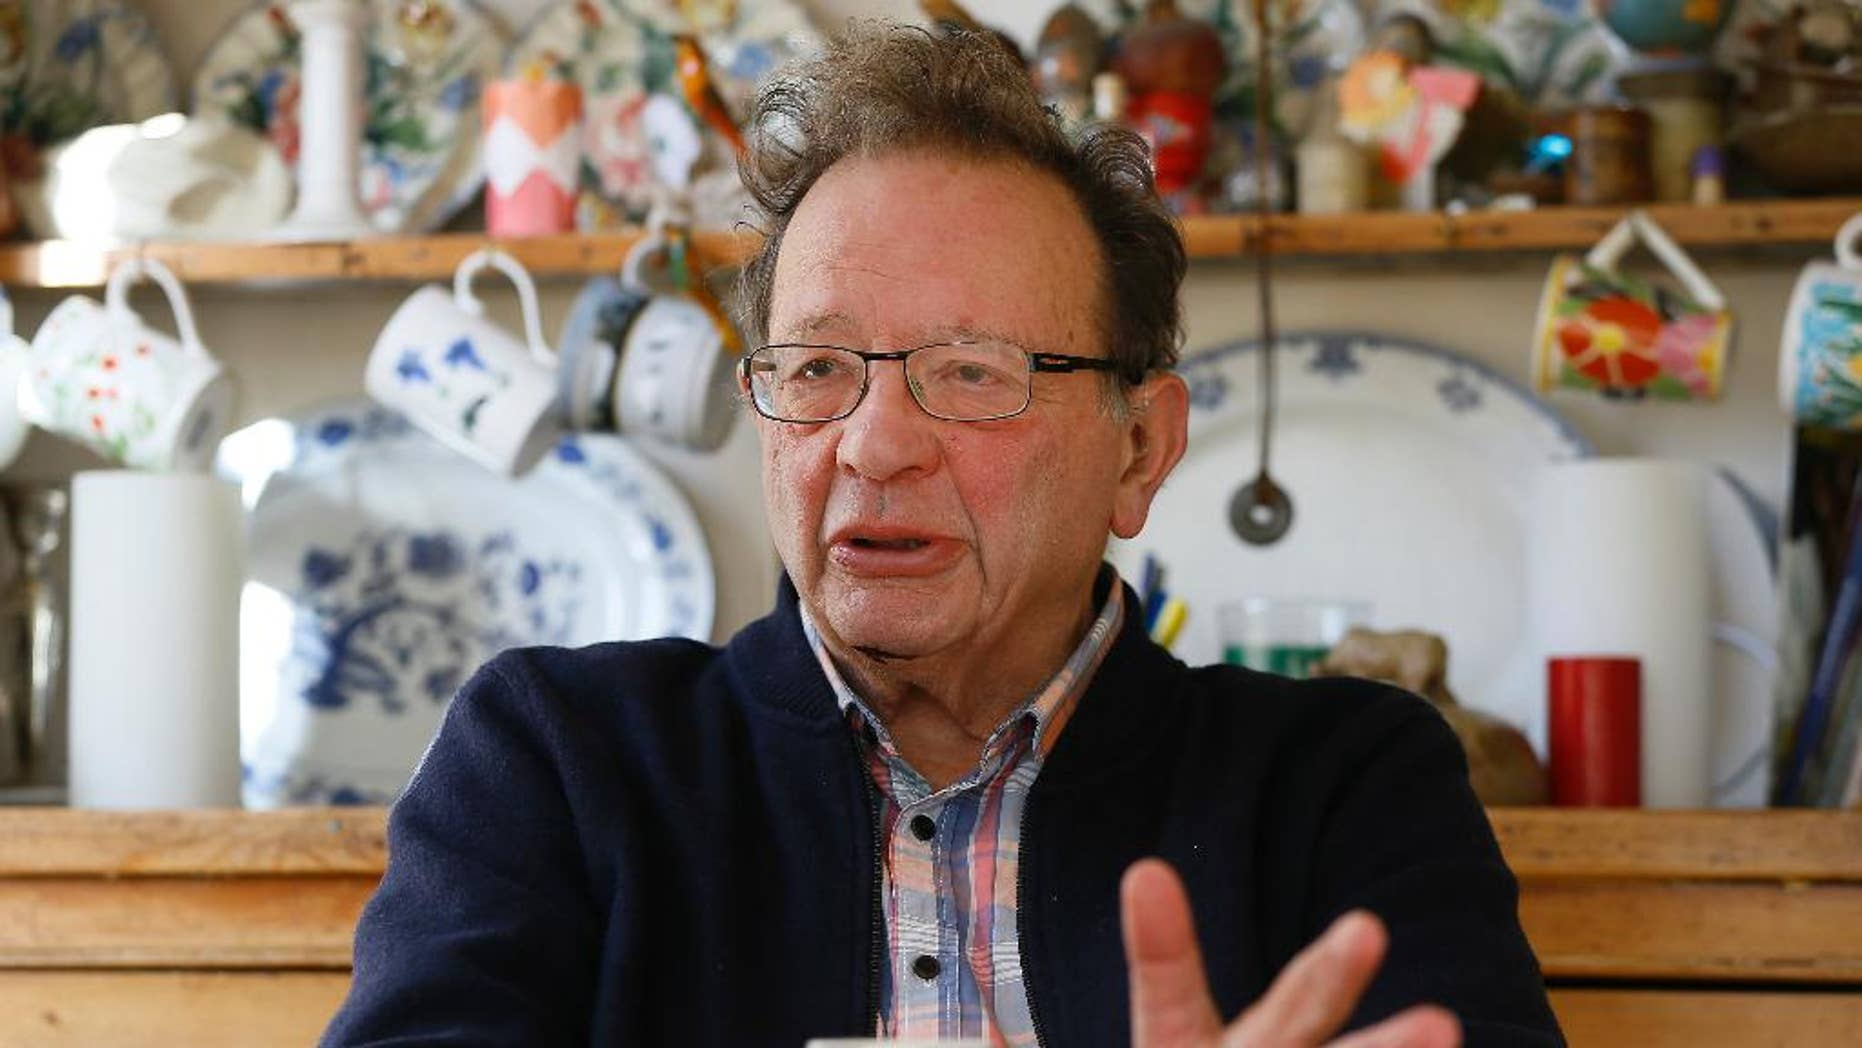 """FILE - In this Feb. 15, 2016 file photo, Larry Sanders, the brother of former U.S. presidential candidate Bernie Sanders, sits at home in his kitchen in Oxford, England. Bernie Sanders said on Tuesday, Oct. 11, 2016, that he doesn't know """"a heck of a lot"""" about British politics but that hasn't stopped him from endorsing his brother Larry Sanders' bid for a seat in Parliament. (AP Photo/Kirsty Wigglesworth, File)"""